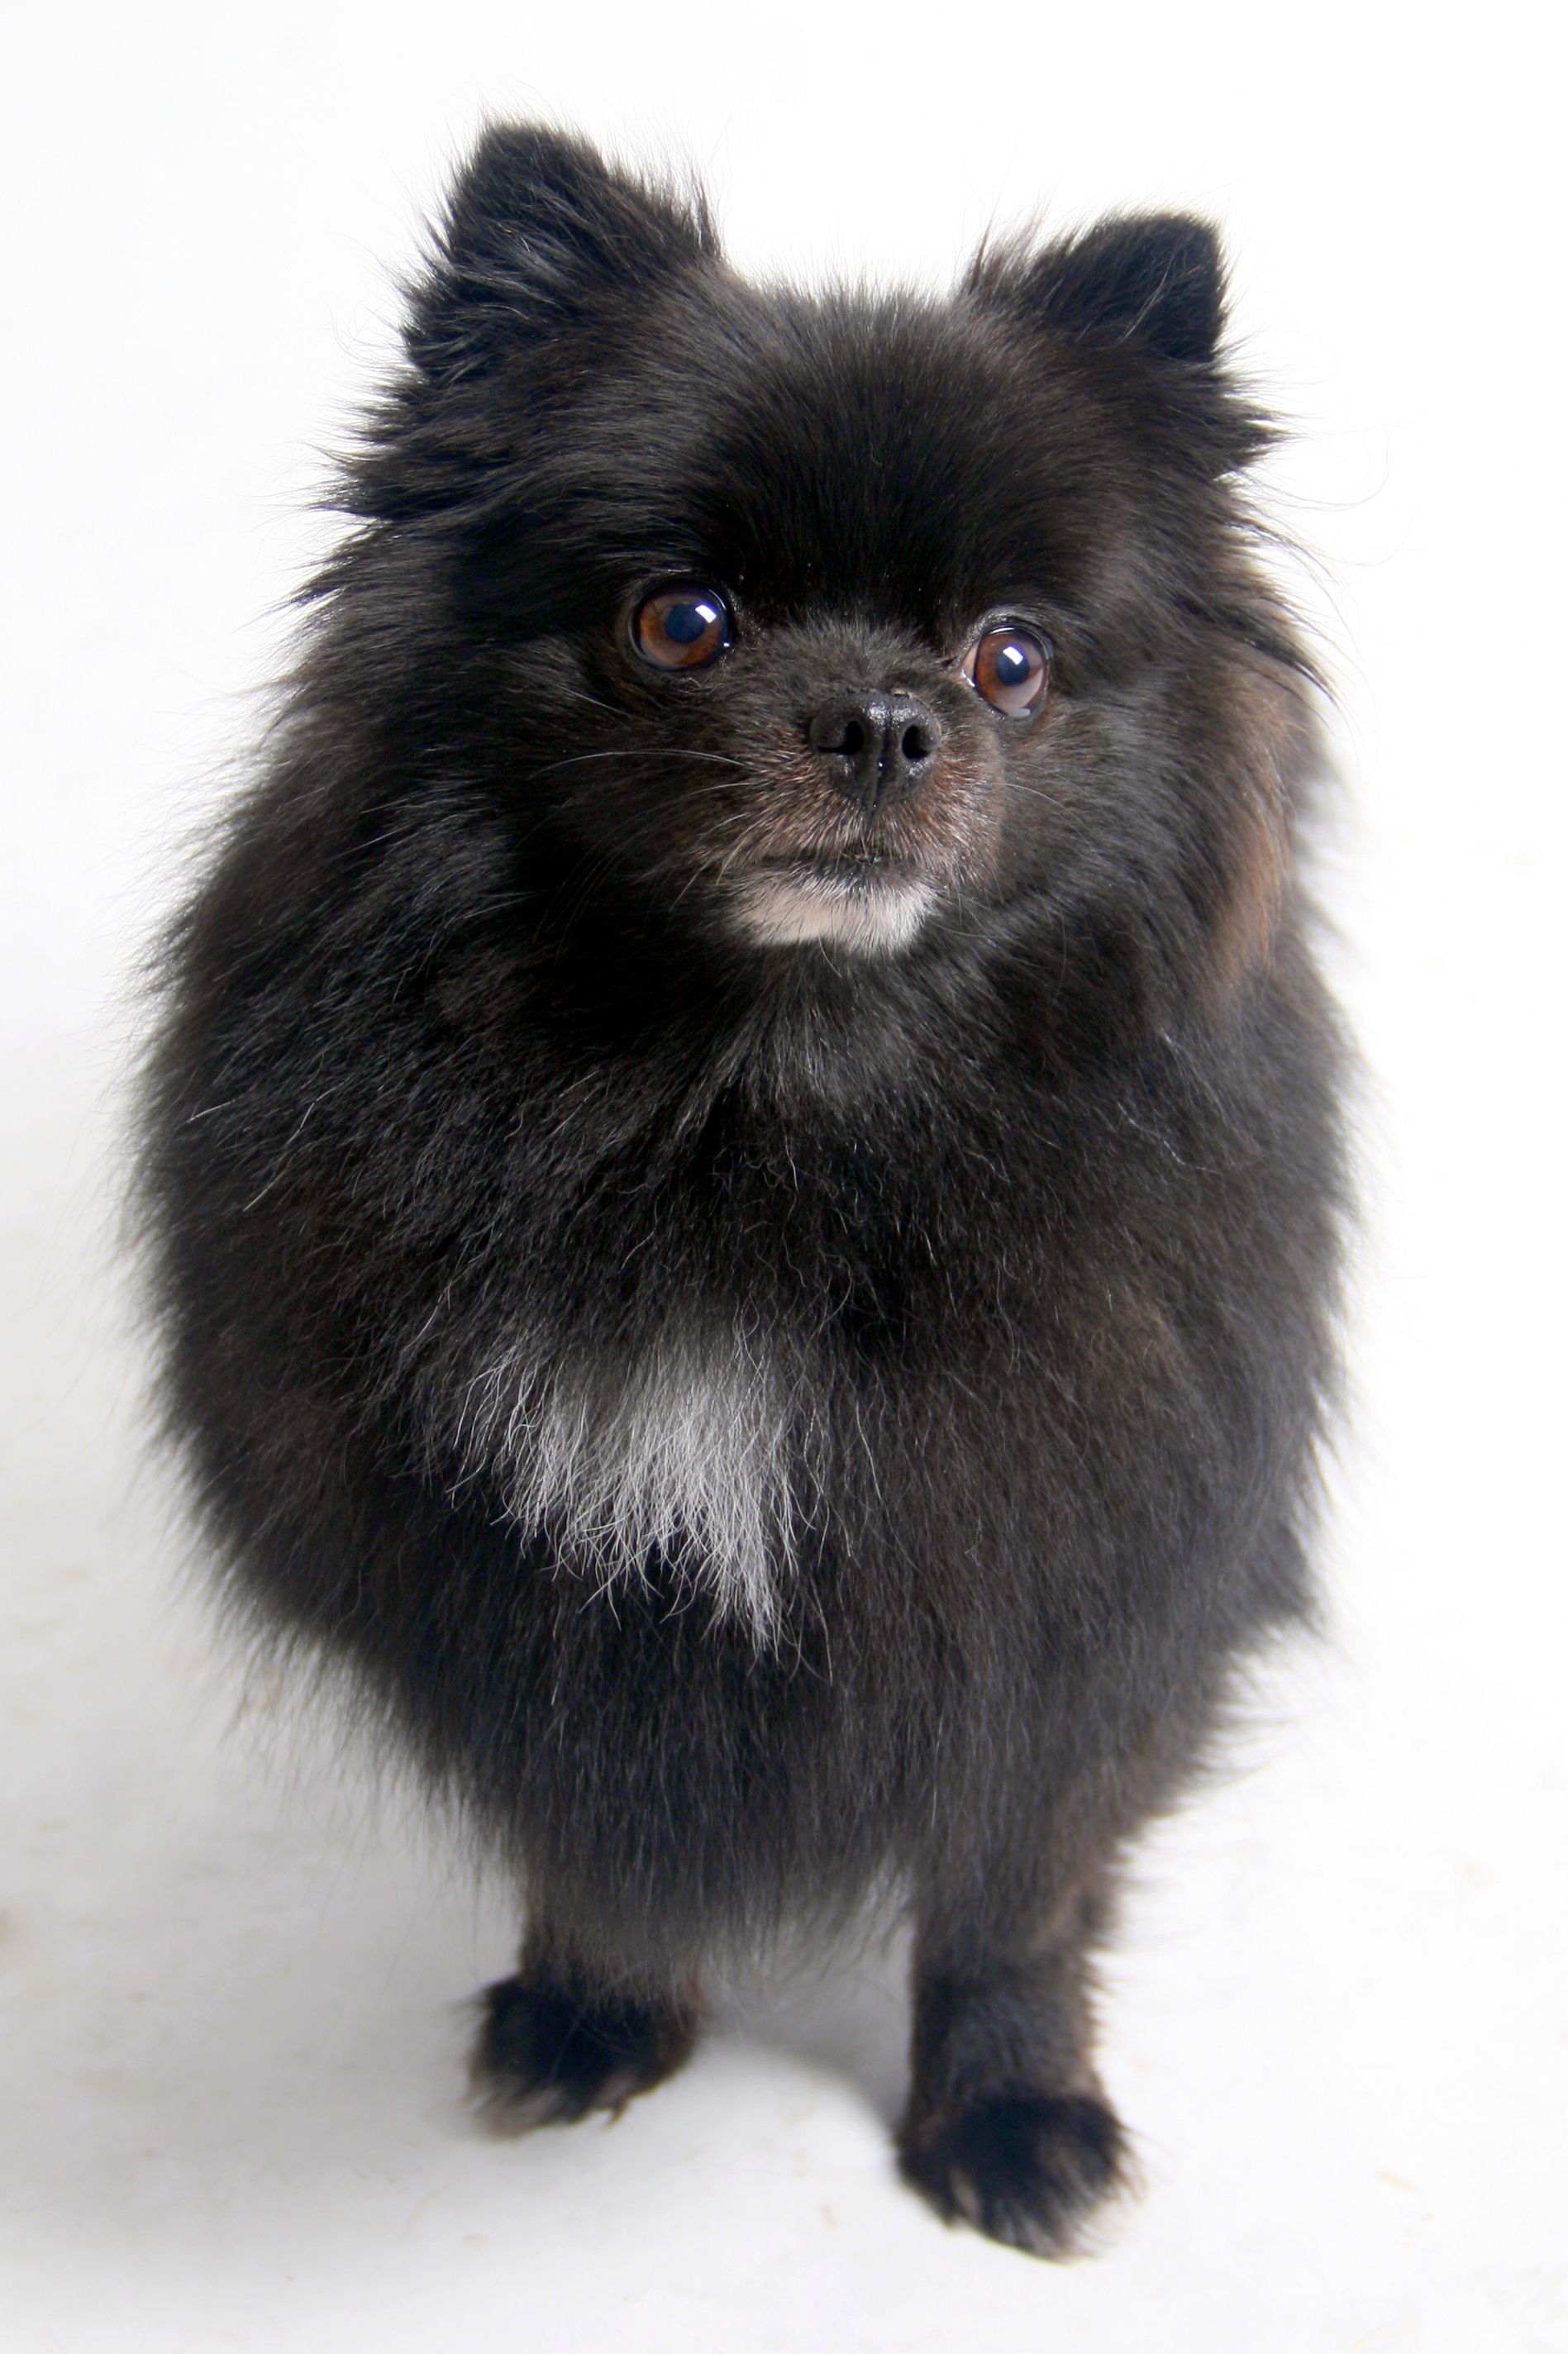 When Prima, a fouryearold Pomeranian mix, arrived at the